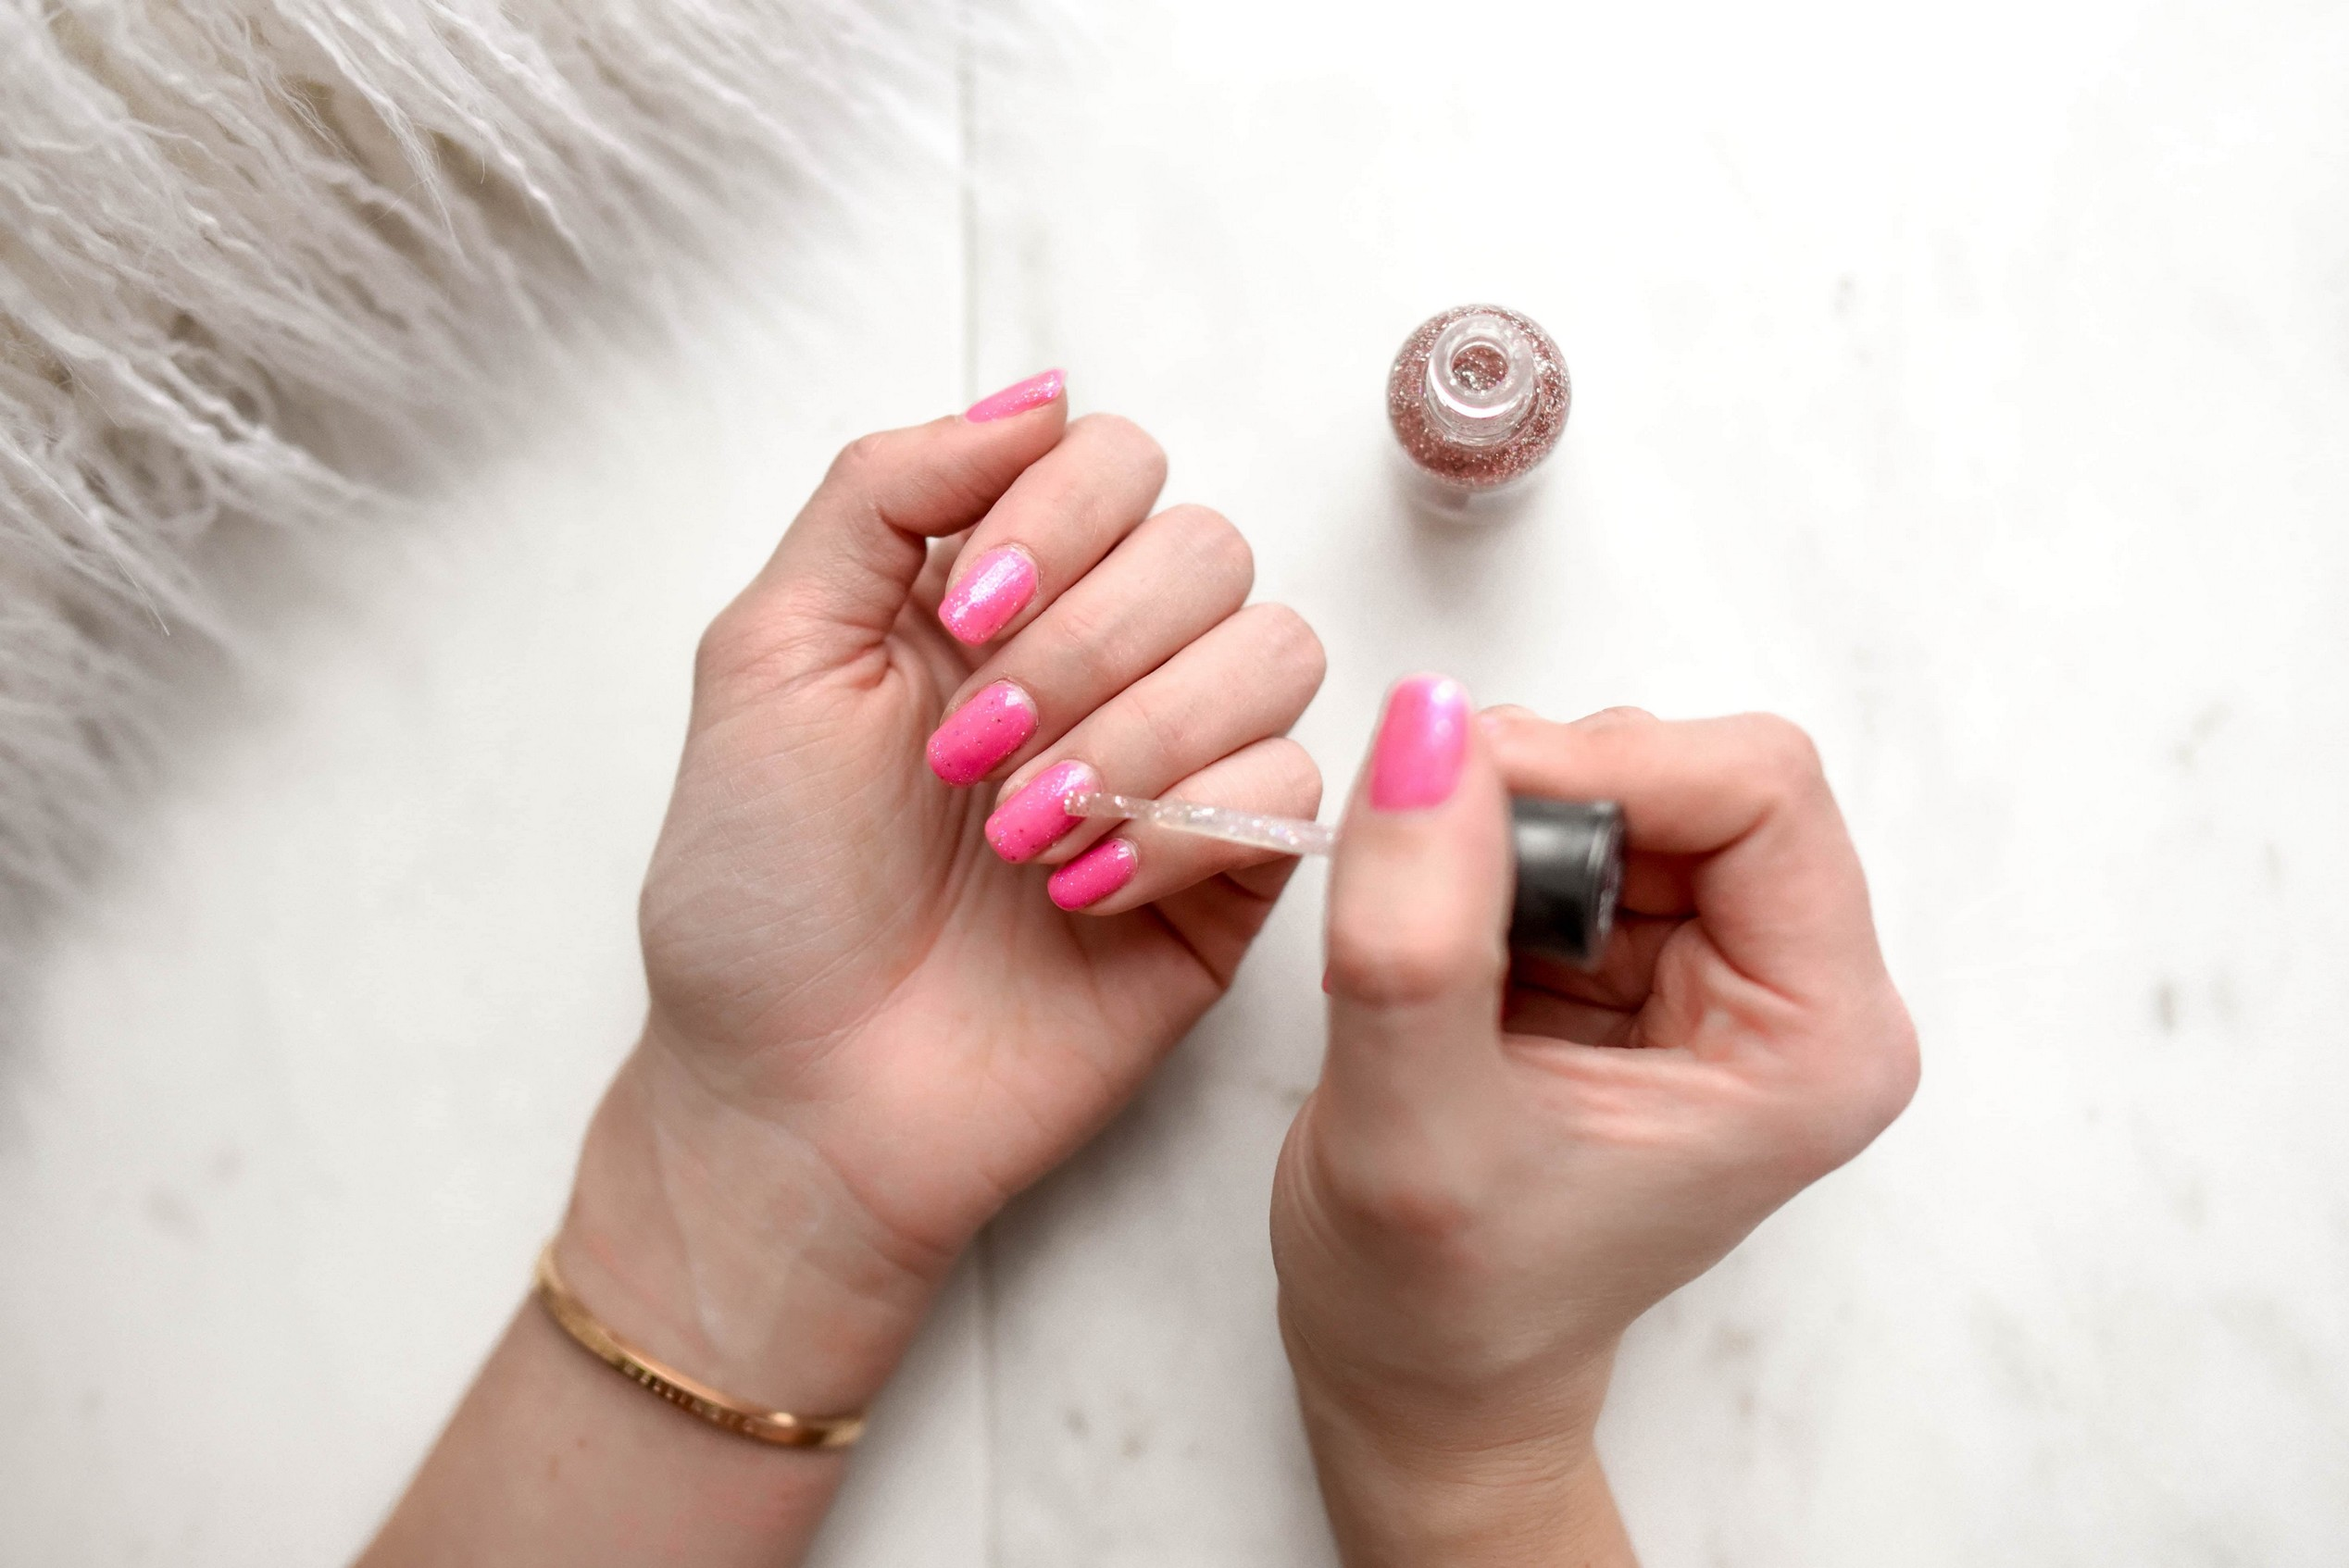 A person applying nail polish, possibly Water-Permeable.